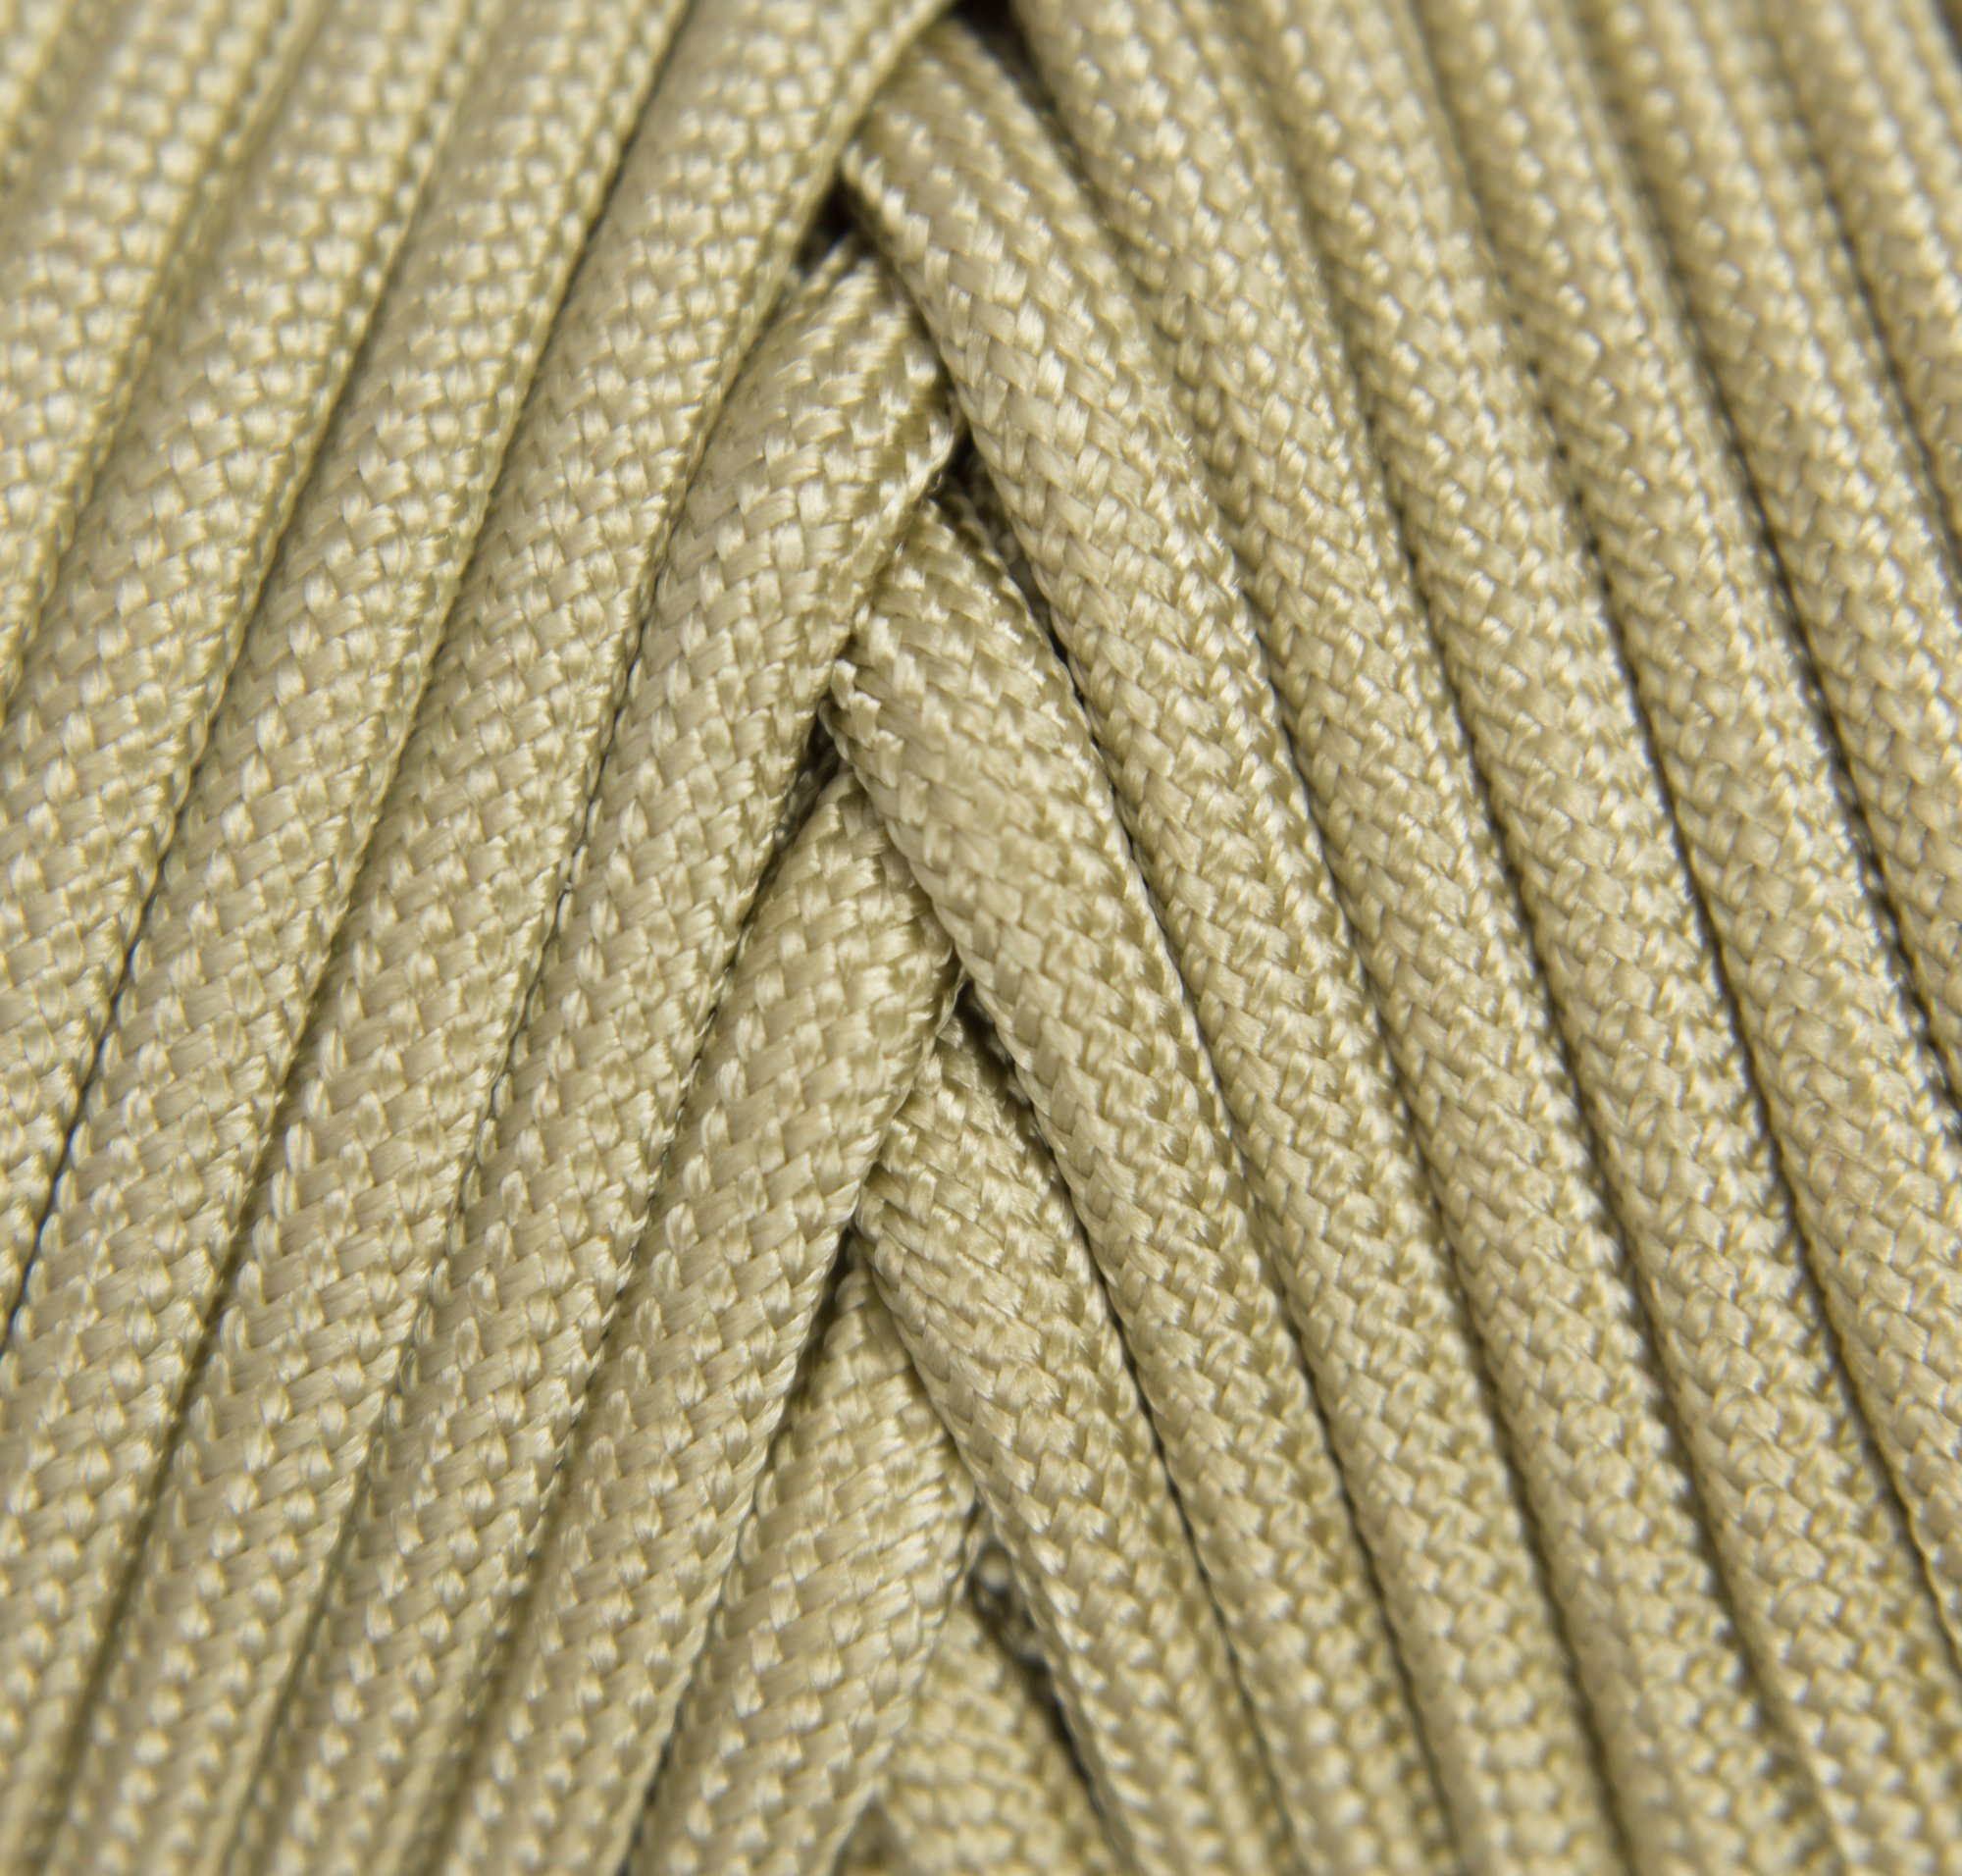 TOUGH-GRID 750lb Buckskin (Desert Sand) Paracord/Parachute Cord - Genuine Mil Spec Type IV 750lb Paracord Used by The US Military (MIl-C-5040-H) - 100% Nylon - Made in The USA. 50Ft. - Buckskin by TOUGH-GRID (Image #3)